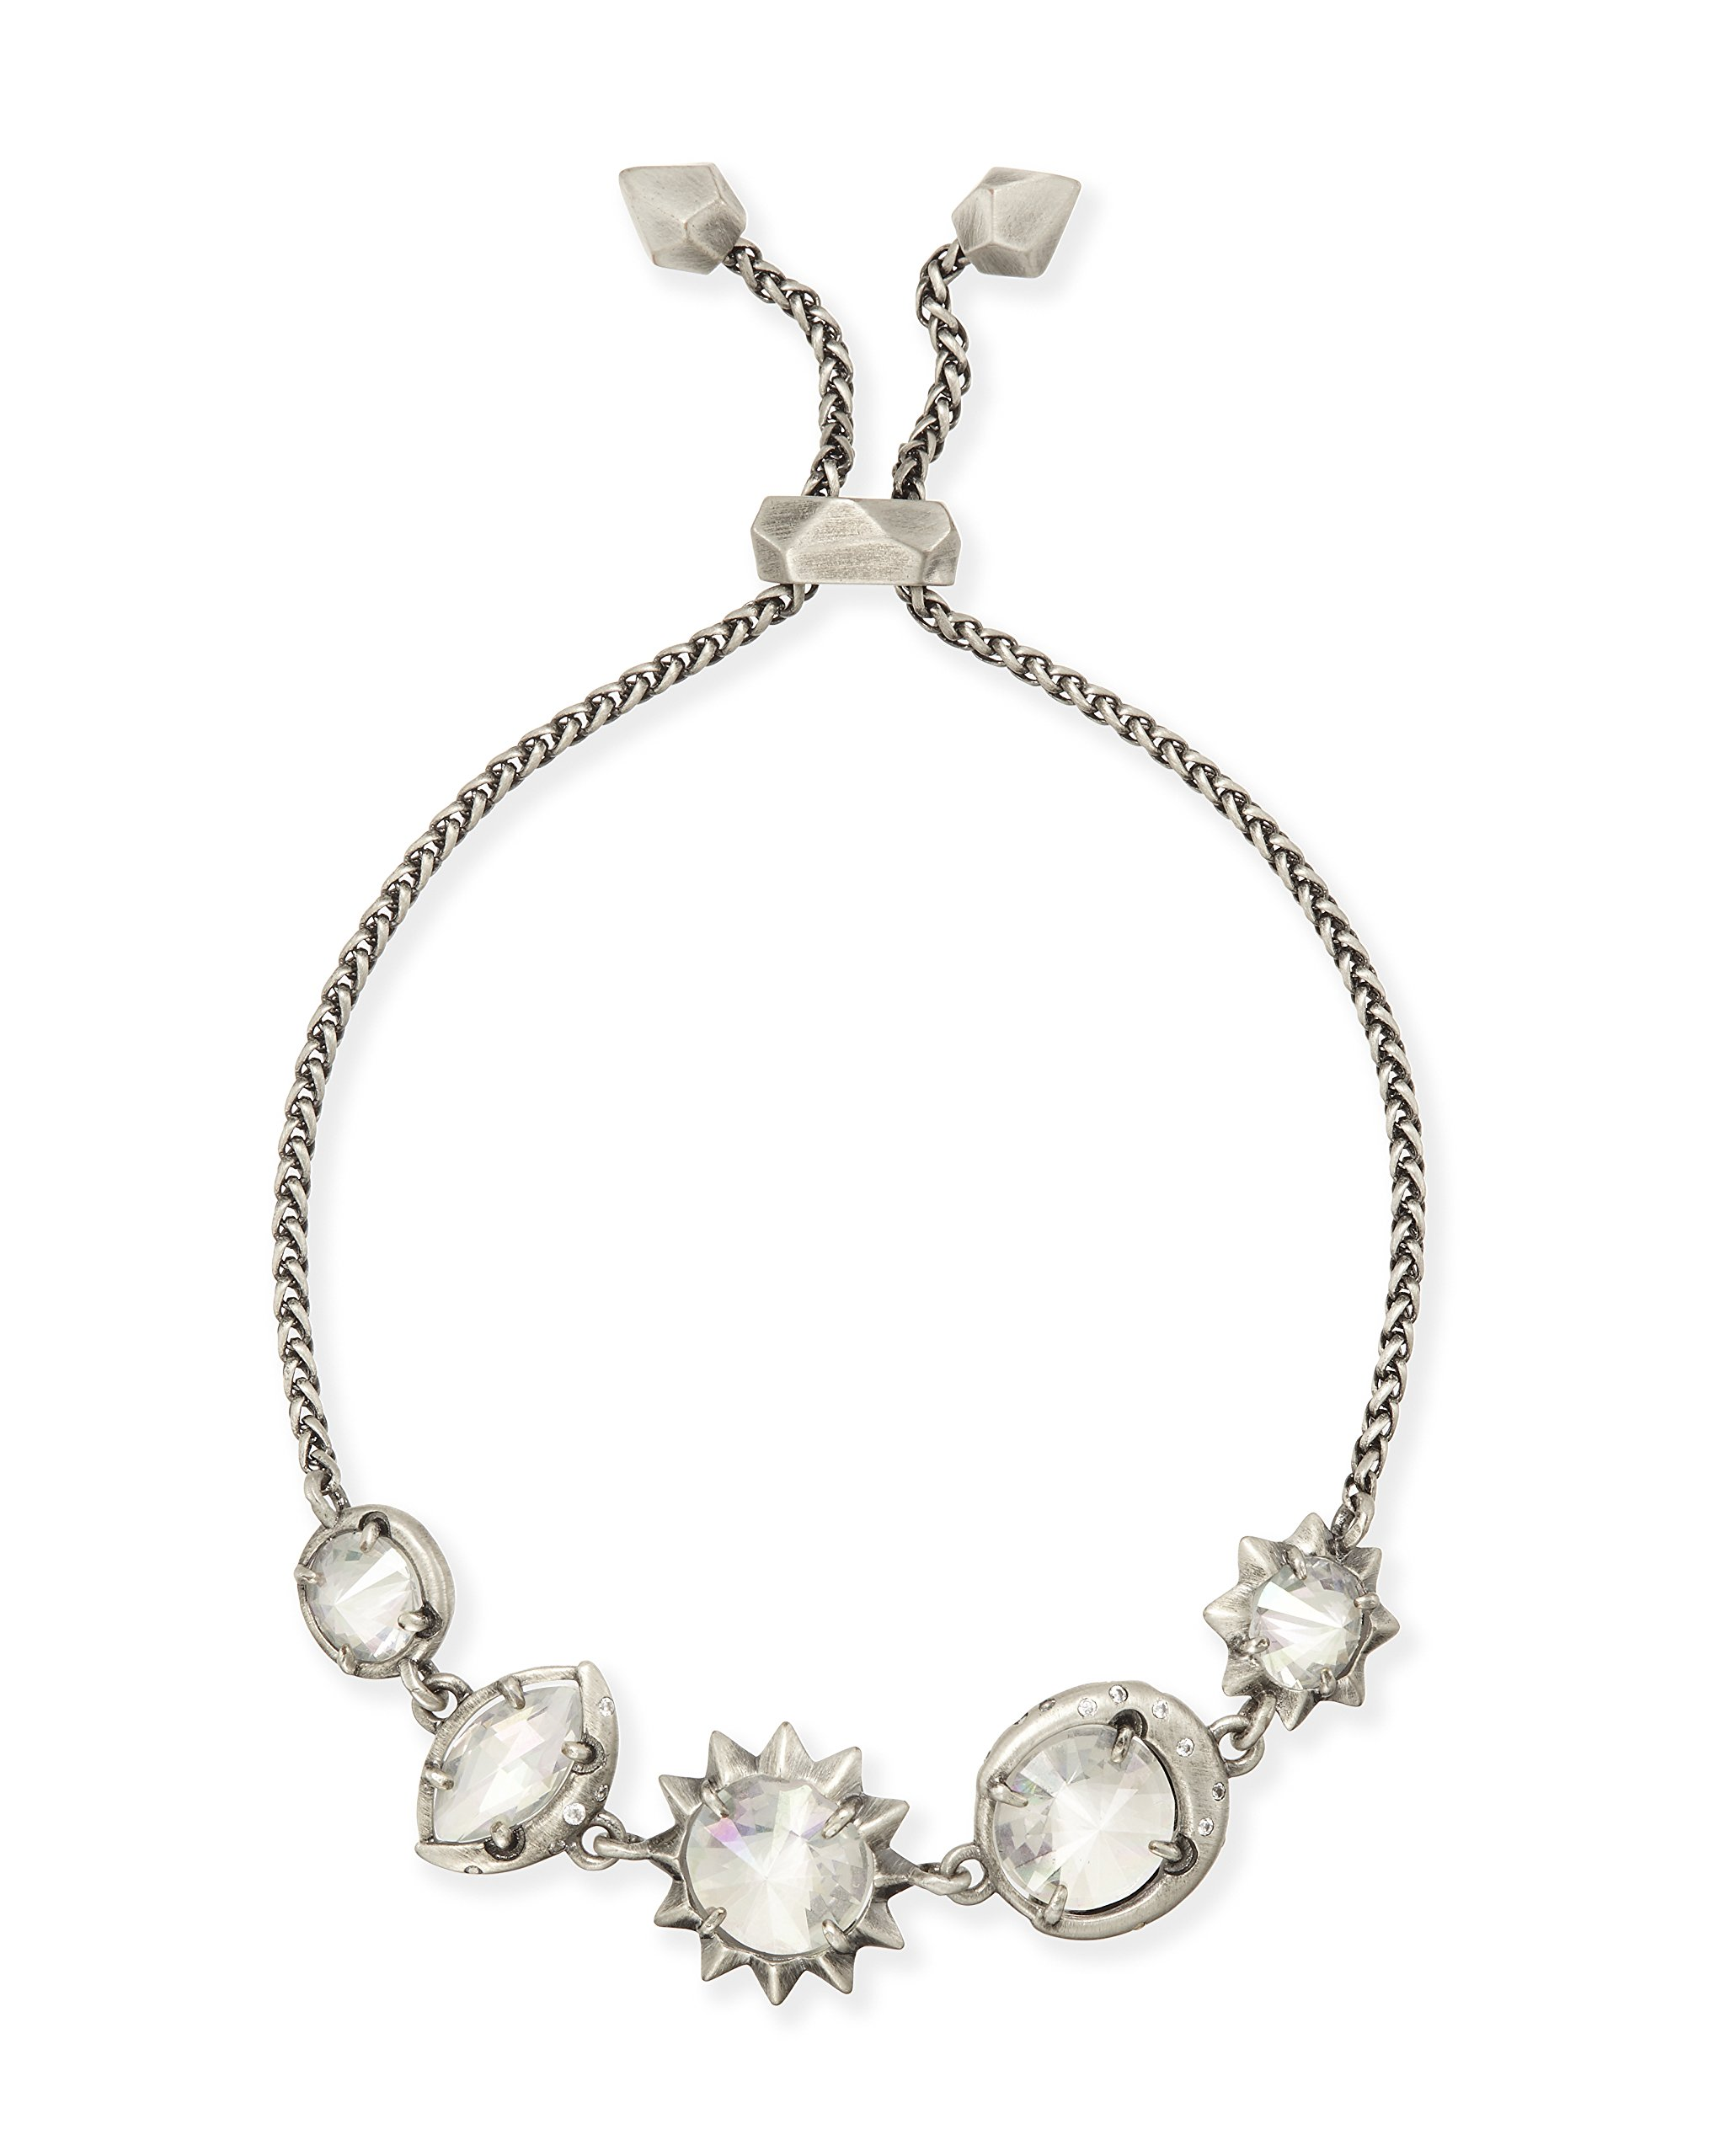 Kendra Scott Jodie Bracelet in Rhodium Plated Iridescent Clear Glass and Cubic Zirconia